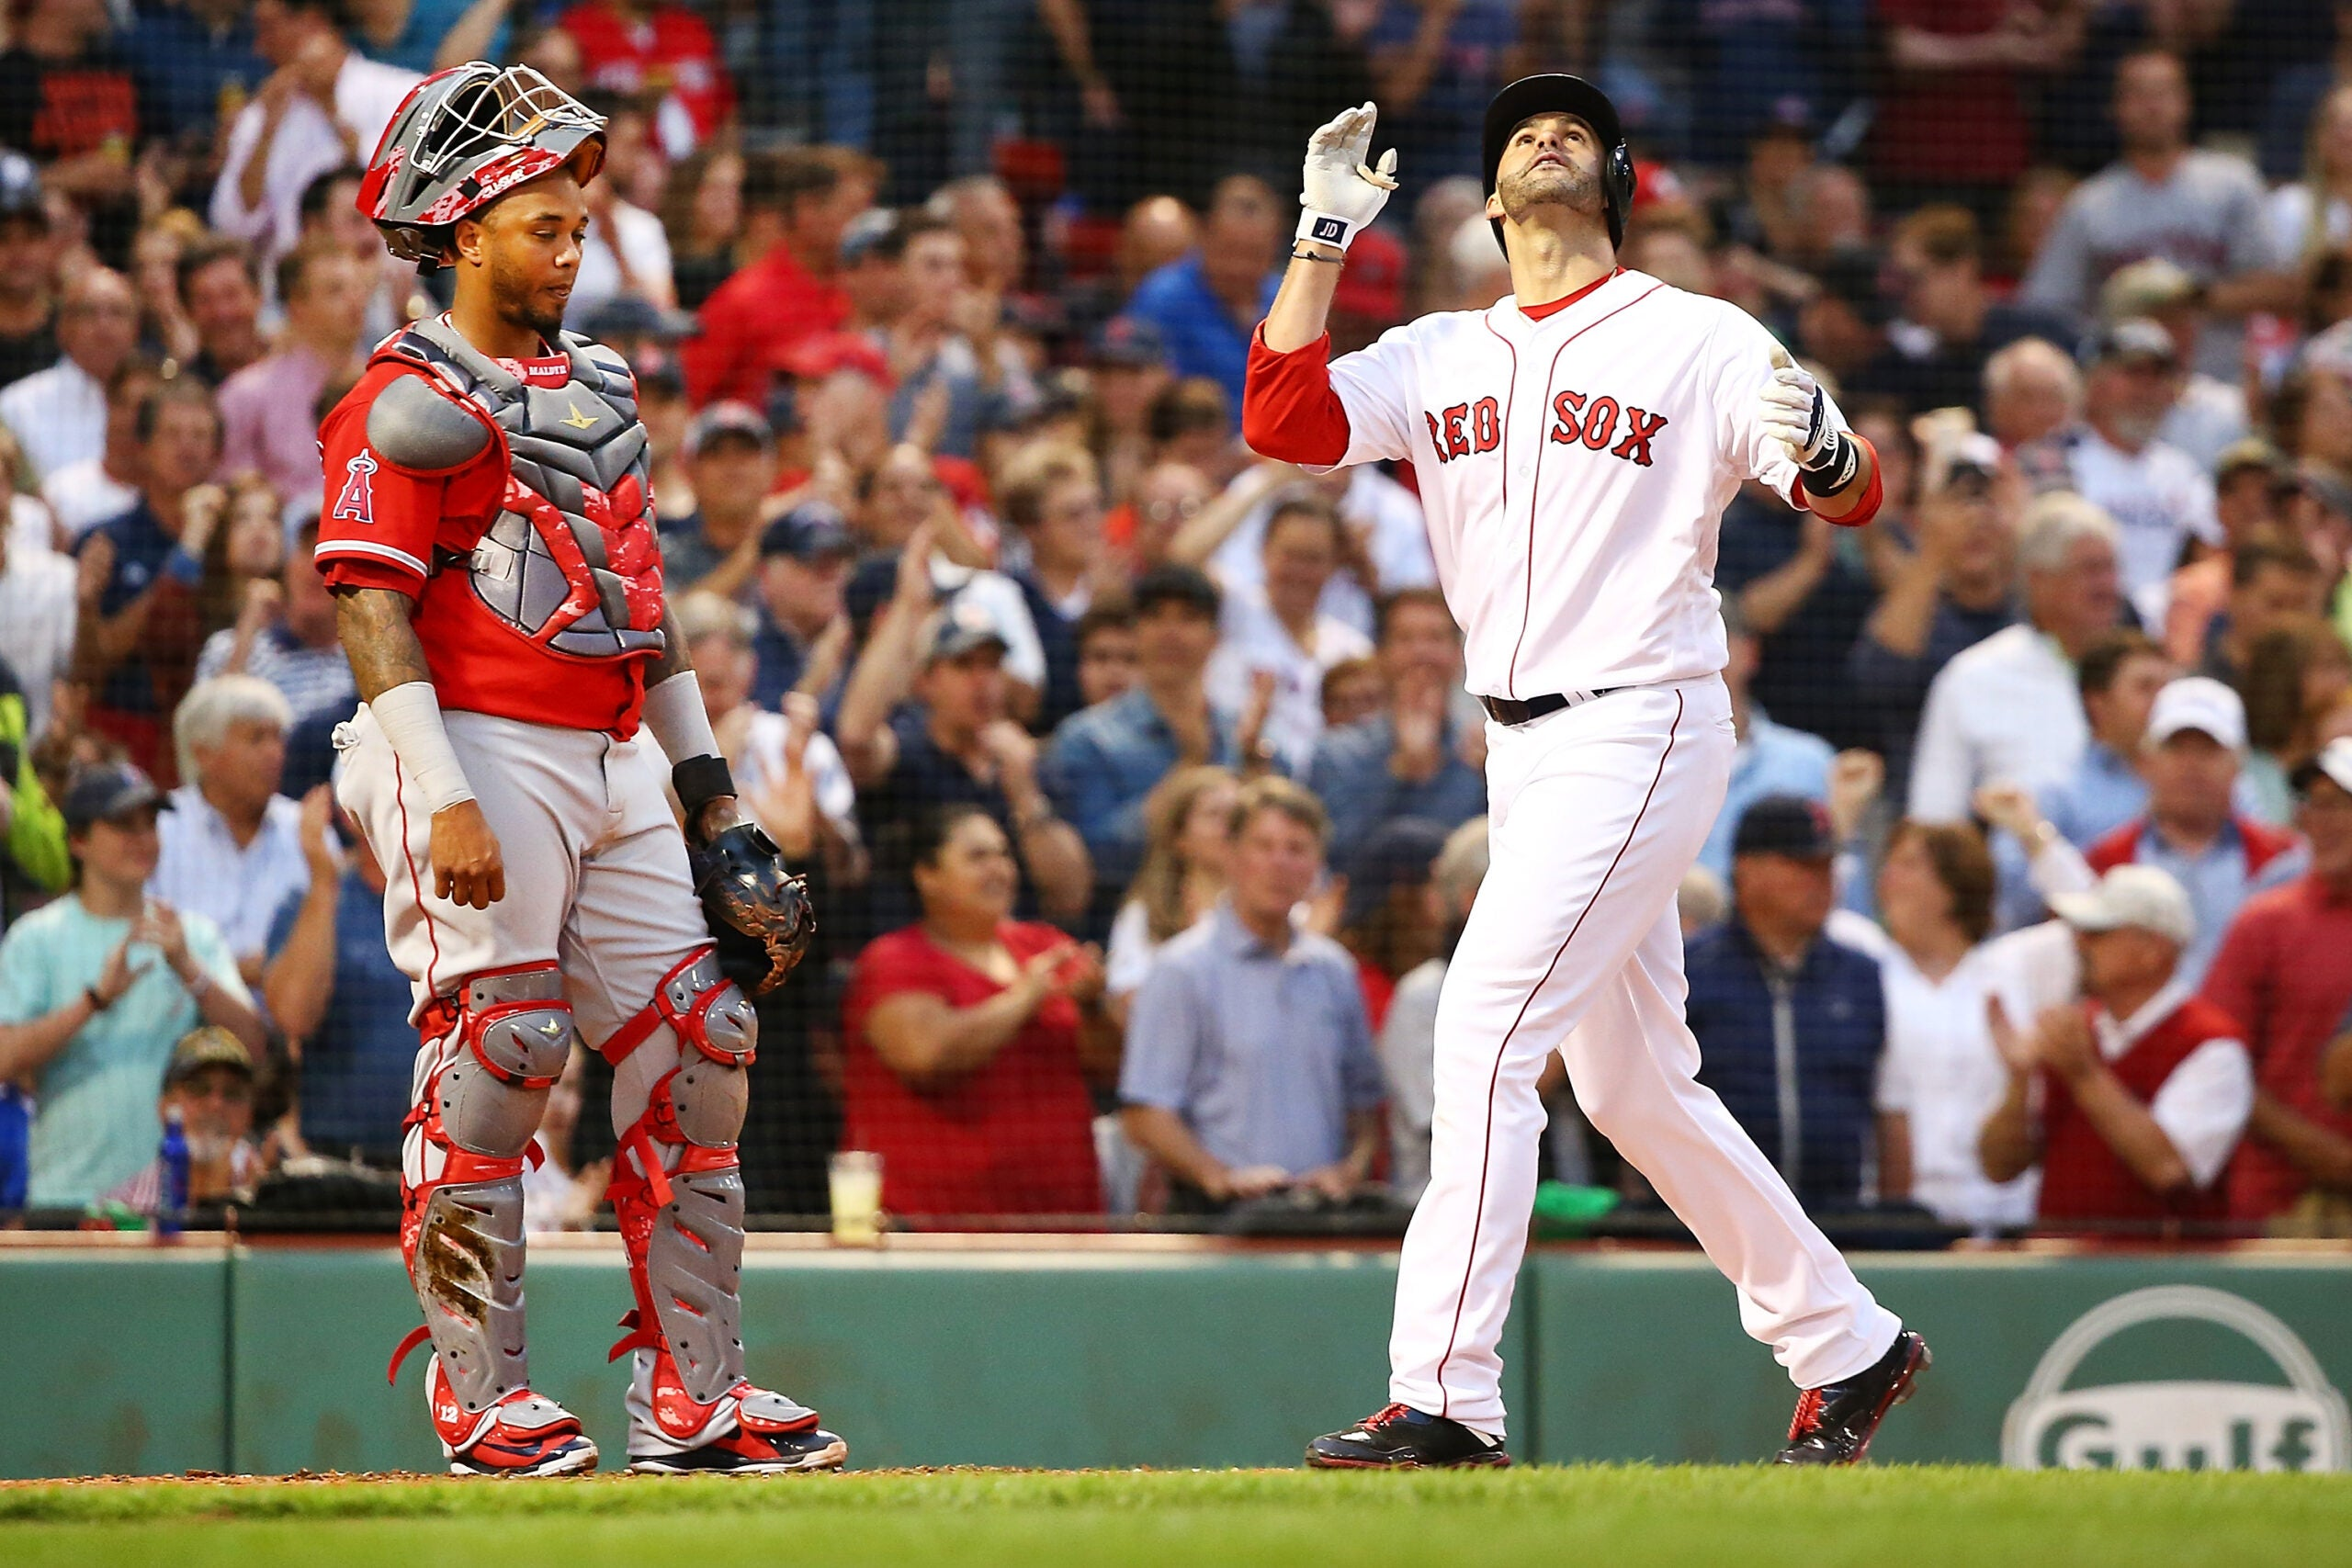 Red Sox hitter J.D. Martinez crosses home plate after hitting his 25th home run of the 2018 MLB season.